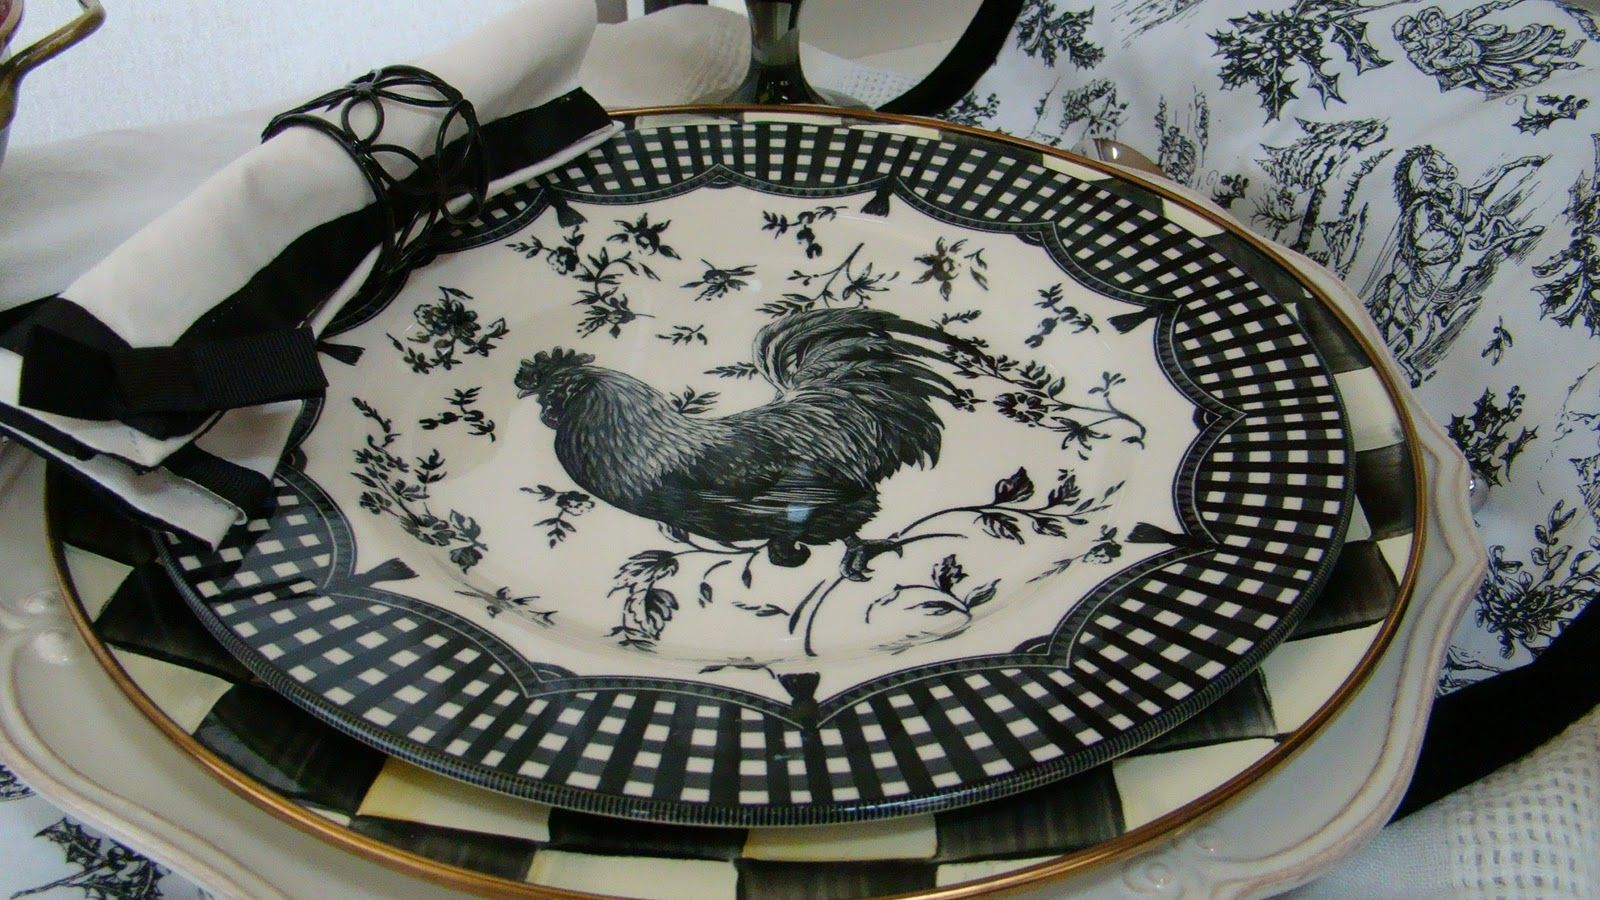 MacKenzie-Childs Courtly Check, and Rooster plates.